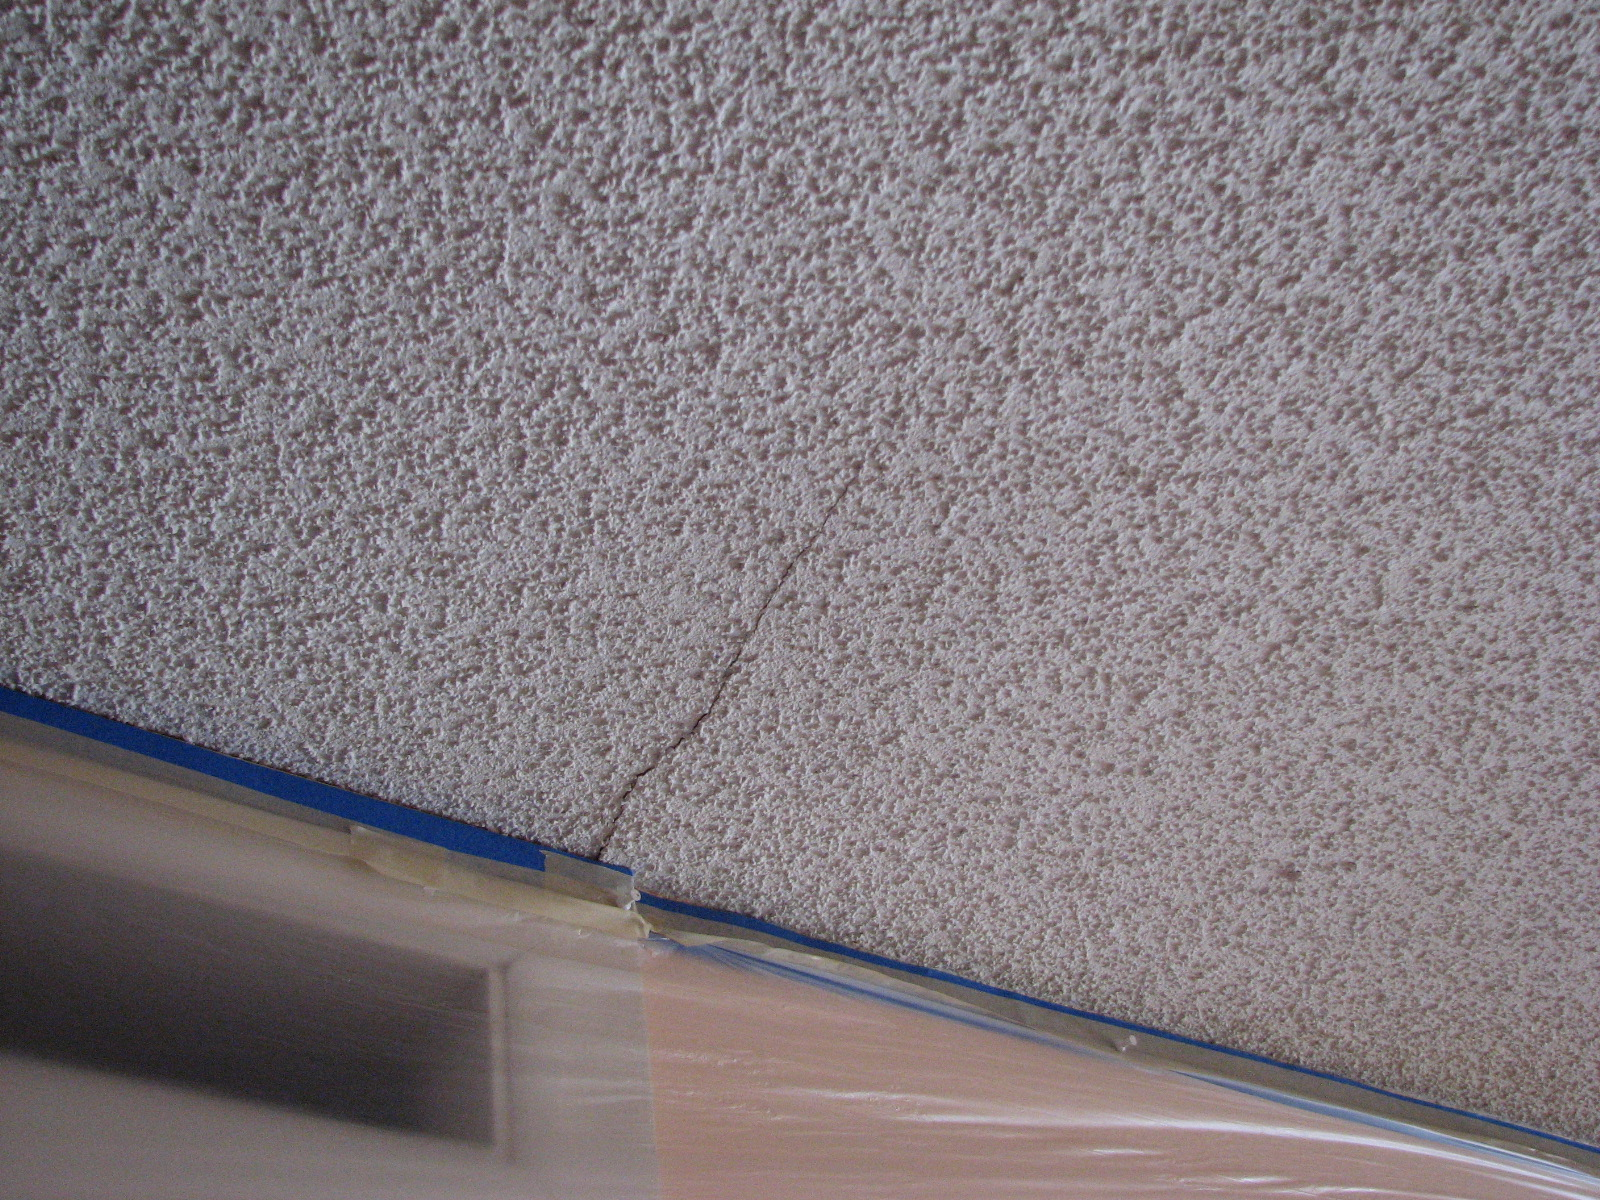 Ceiling Repair MelbourneFl Drywall repair Water Damage Textures